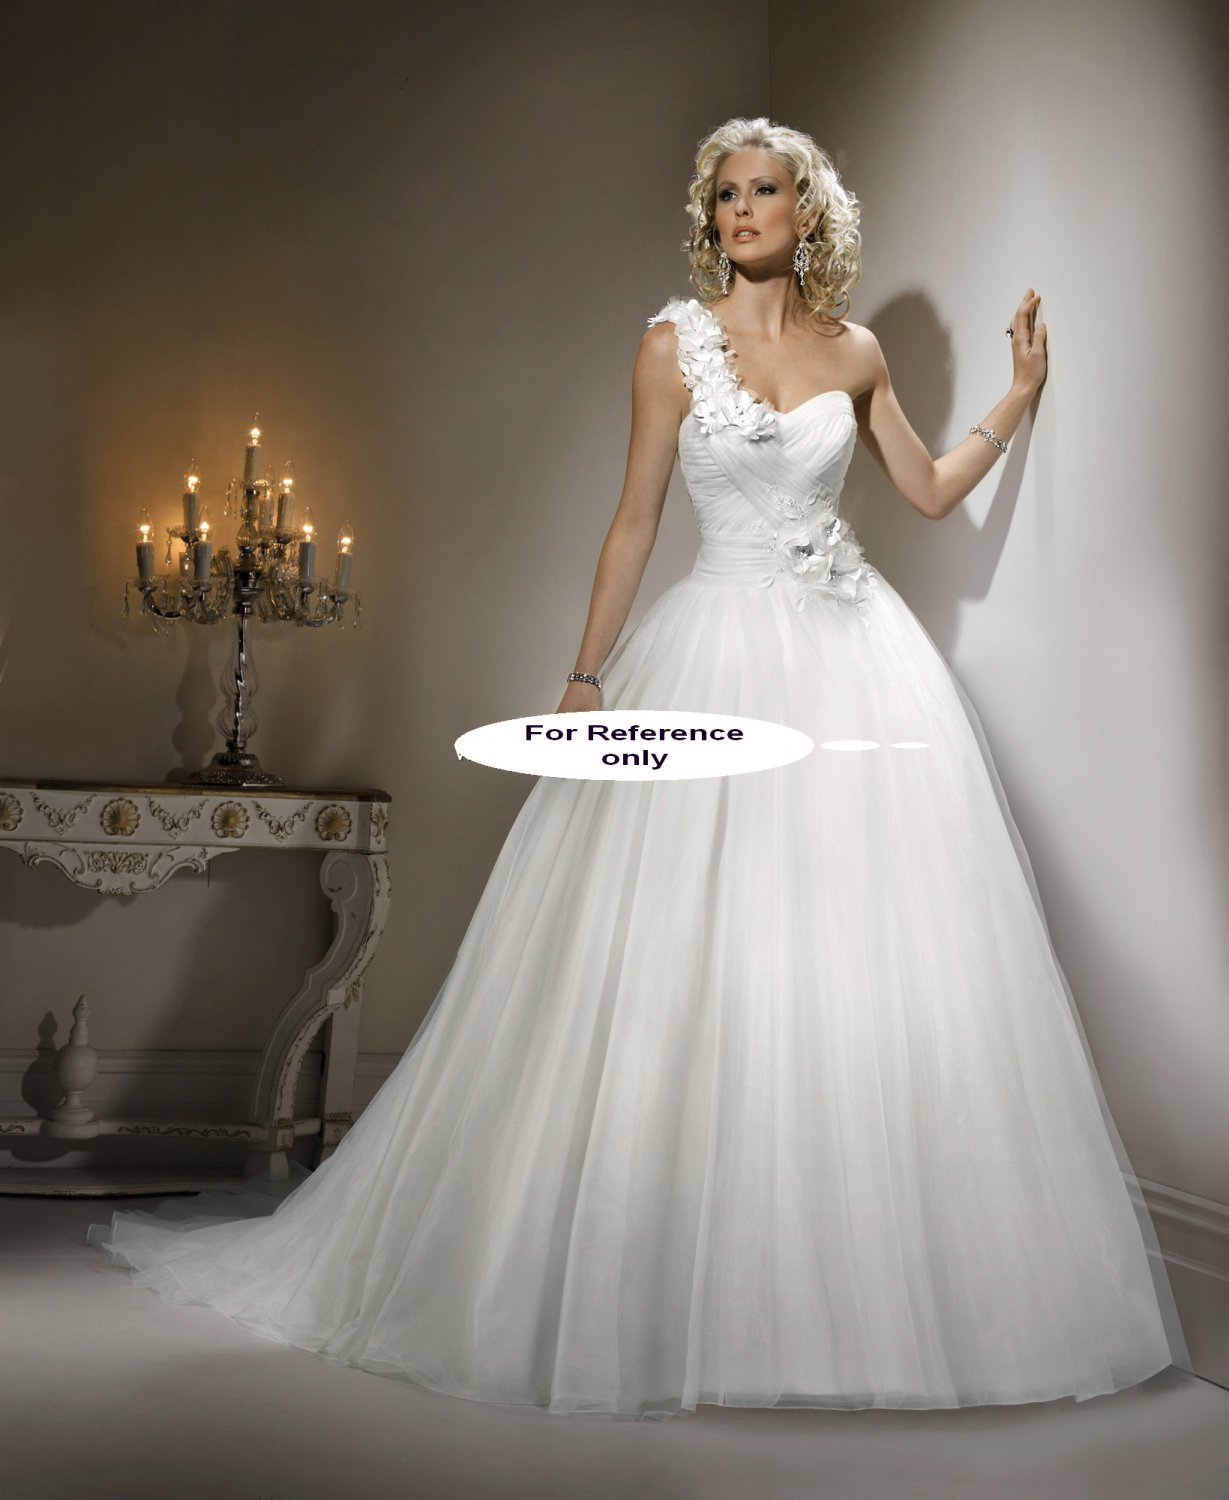 Sweet heart one shoulder ball gown-1424